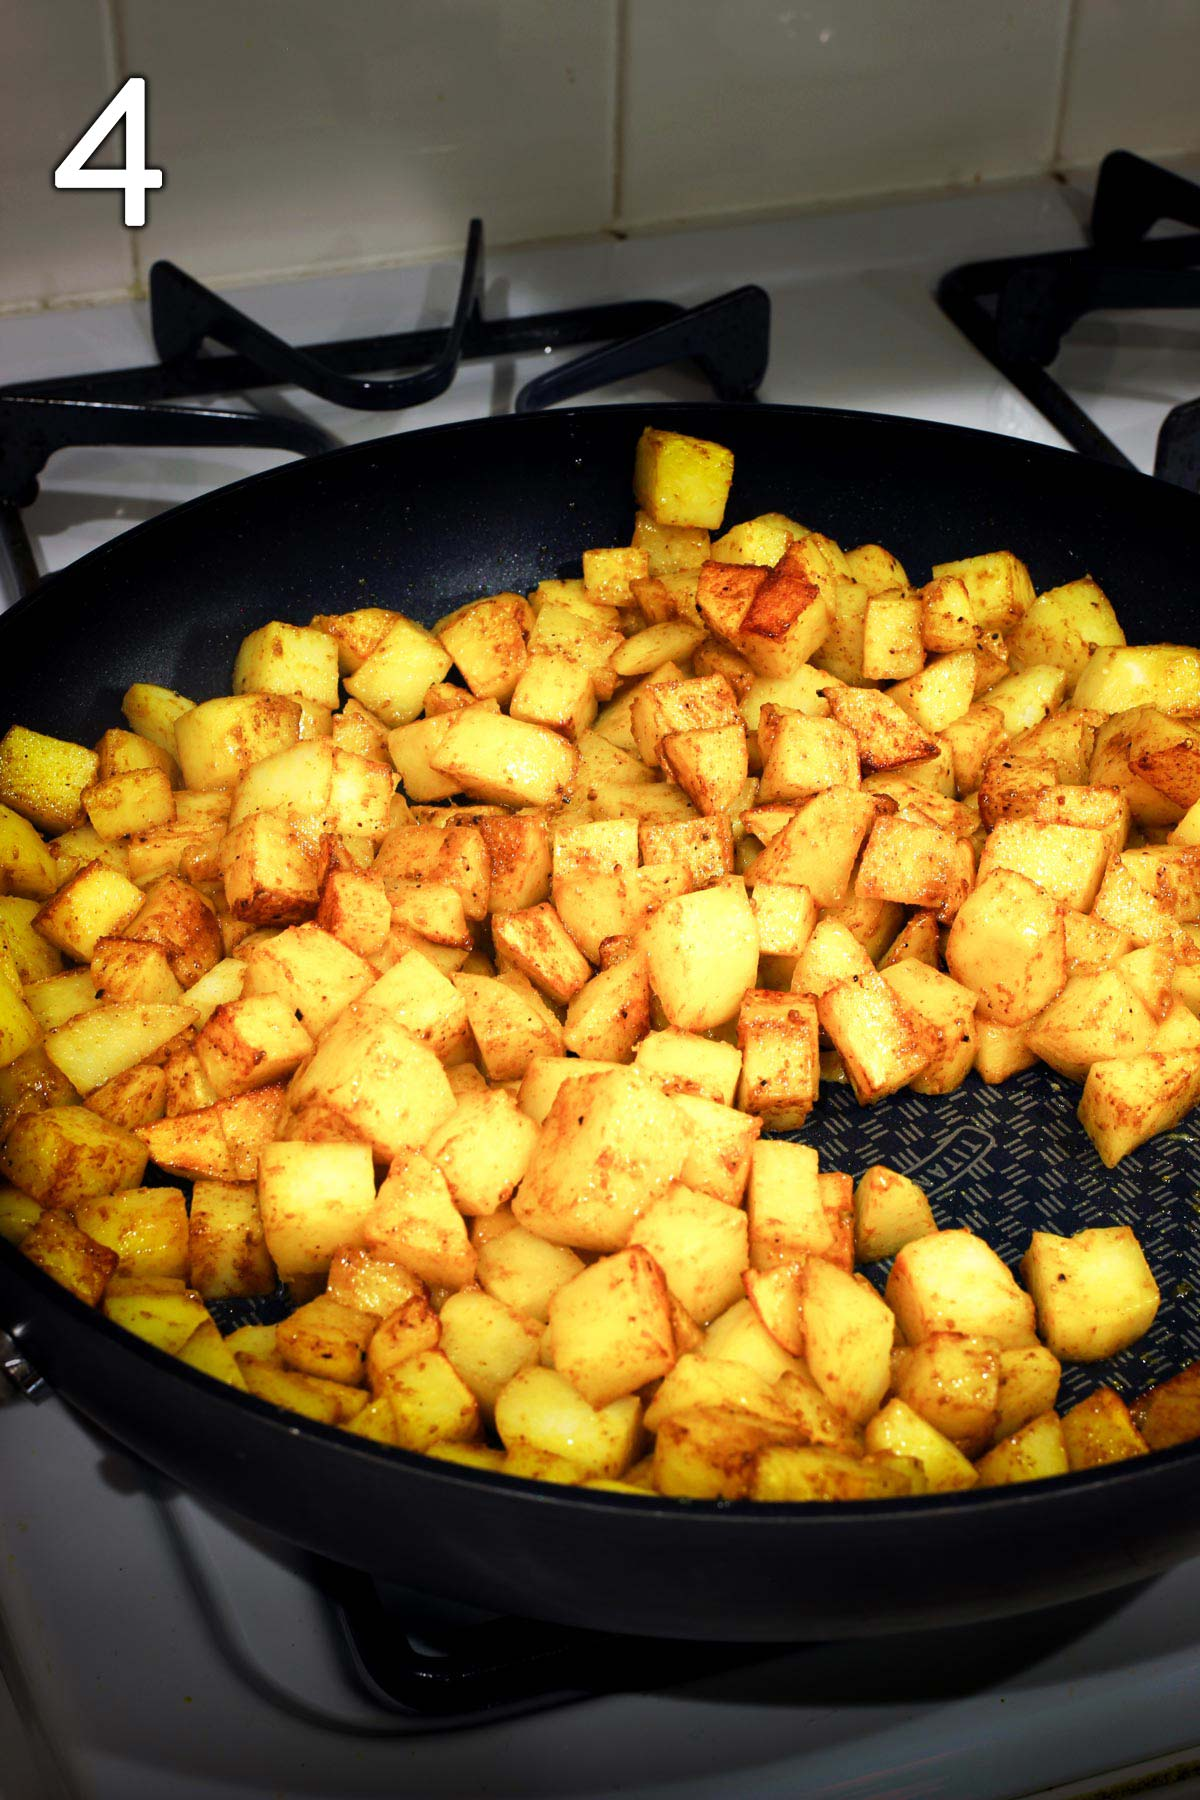 finished potatoes in open skillet.